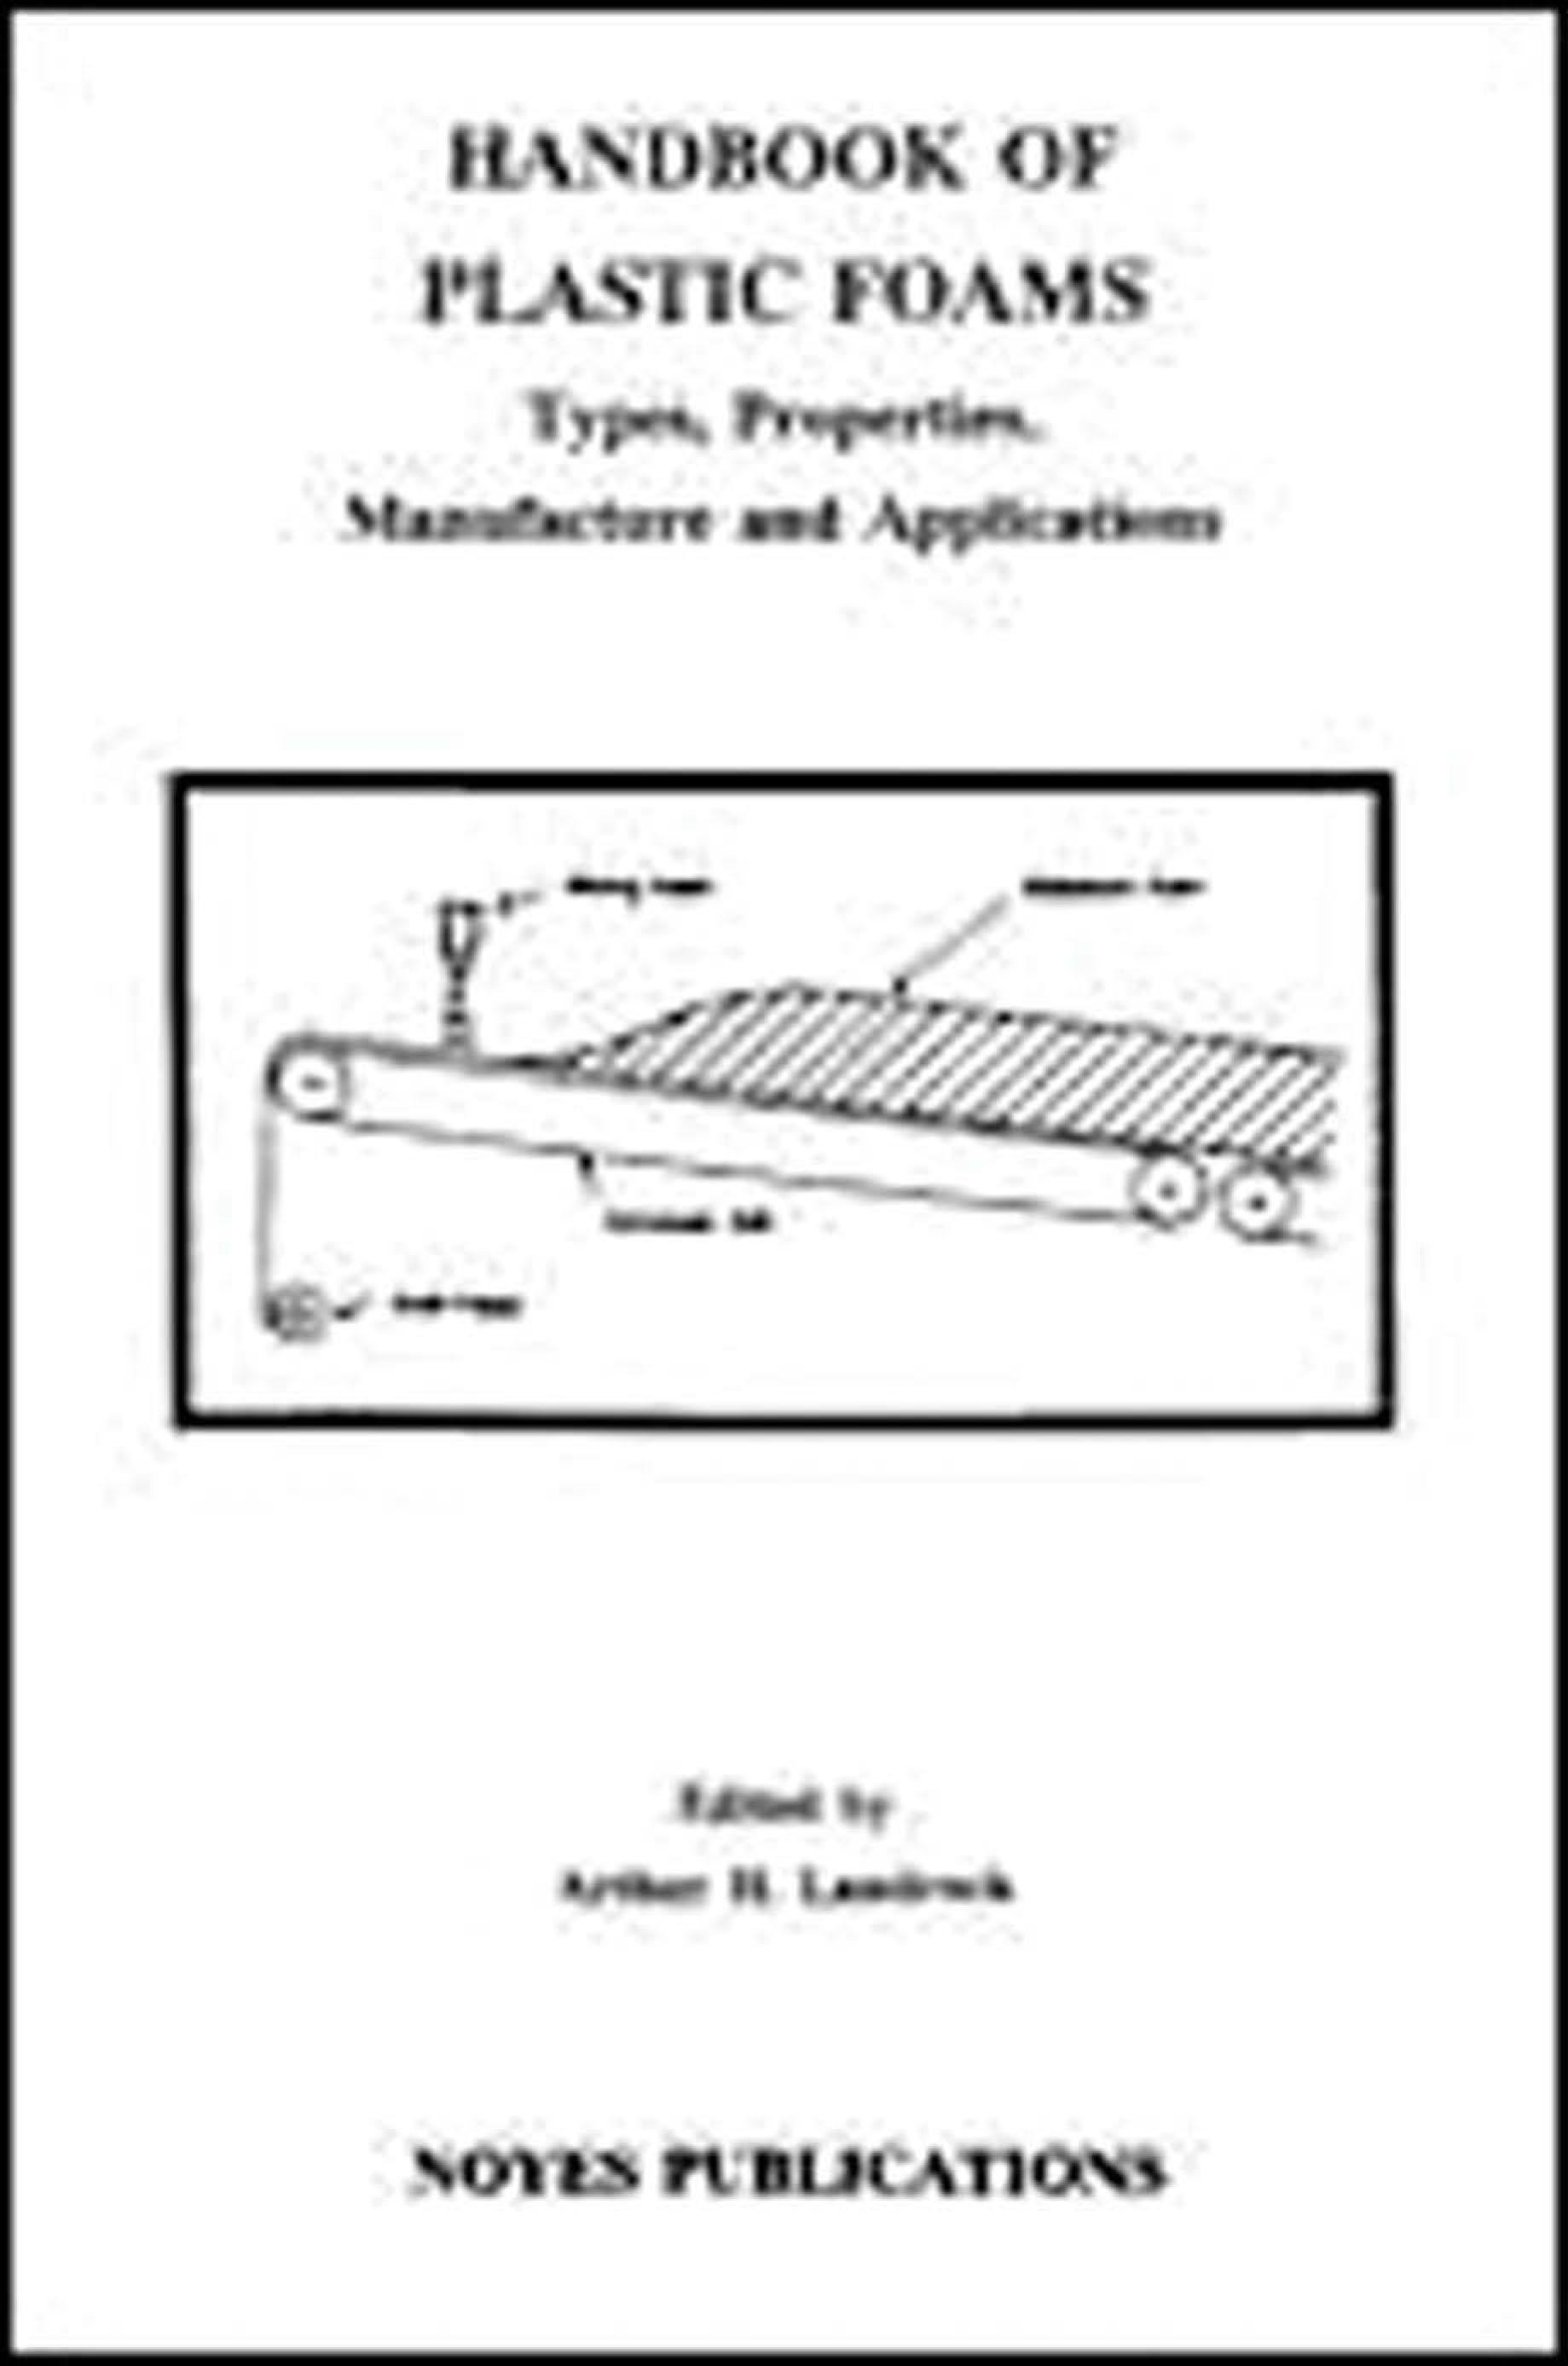 Handbook of Plastic Foams: Types, Properties, Manufacture and Applications